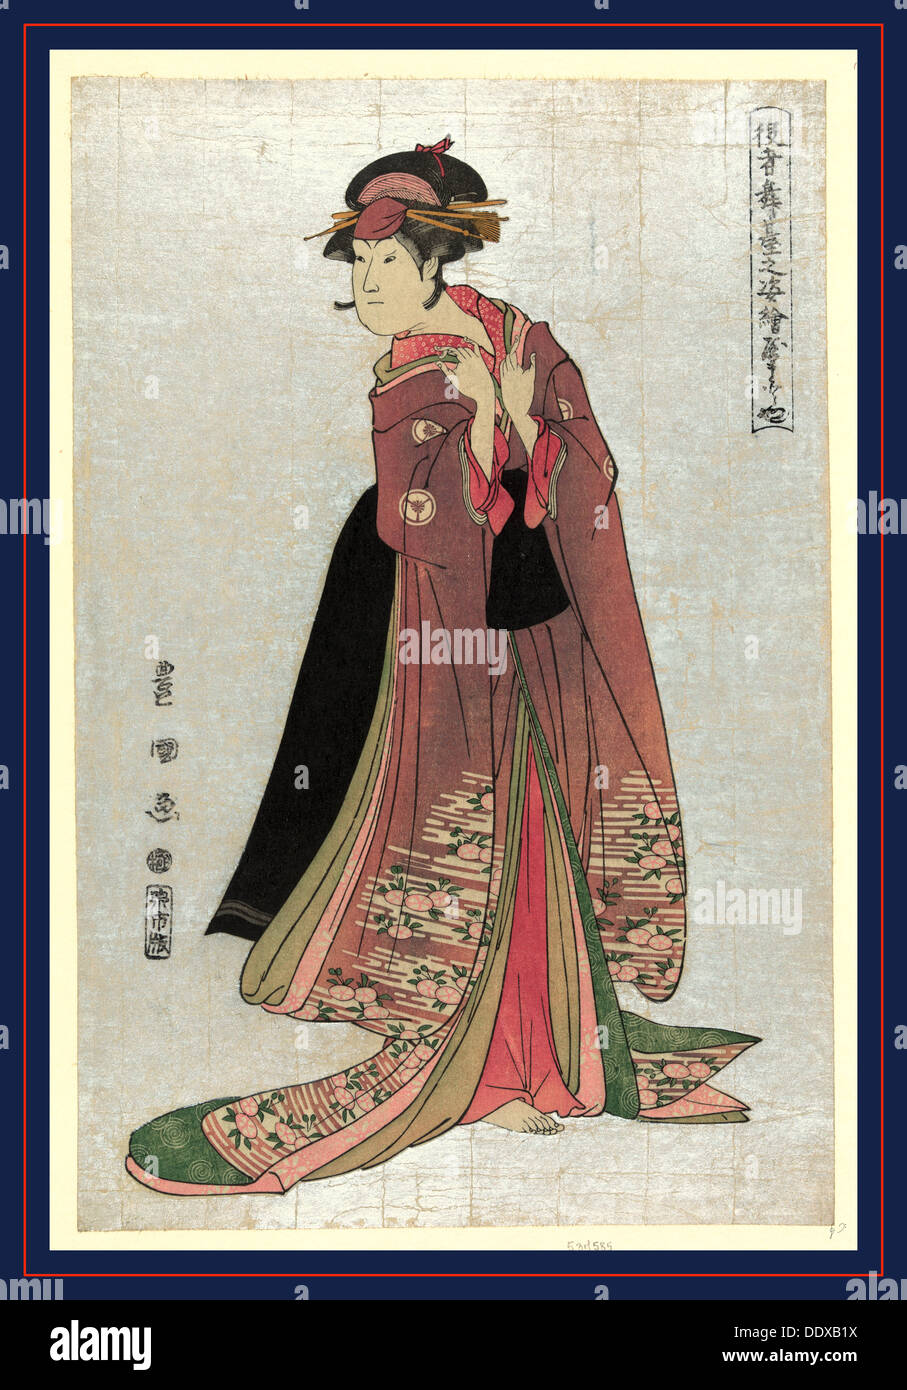 Yamatoya, Utagawa [1794, printed later], 1 print : woodcut, color., Print shows an actor in the role of a woman - Stock Image